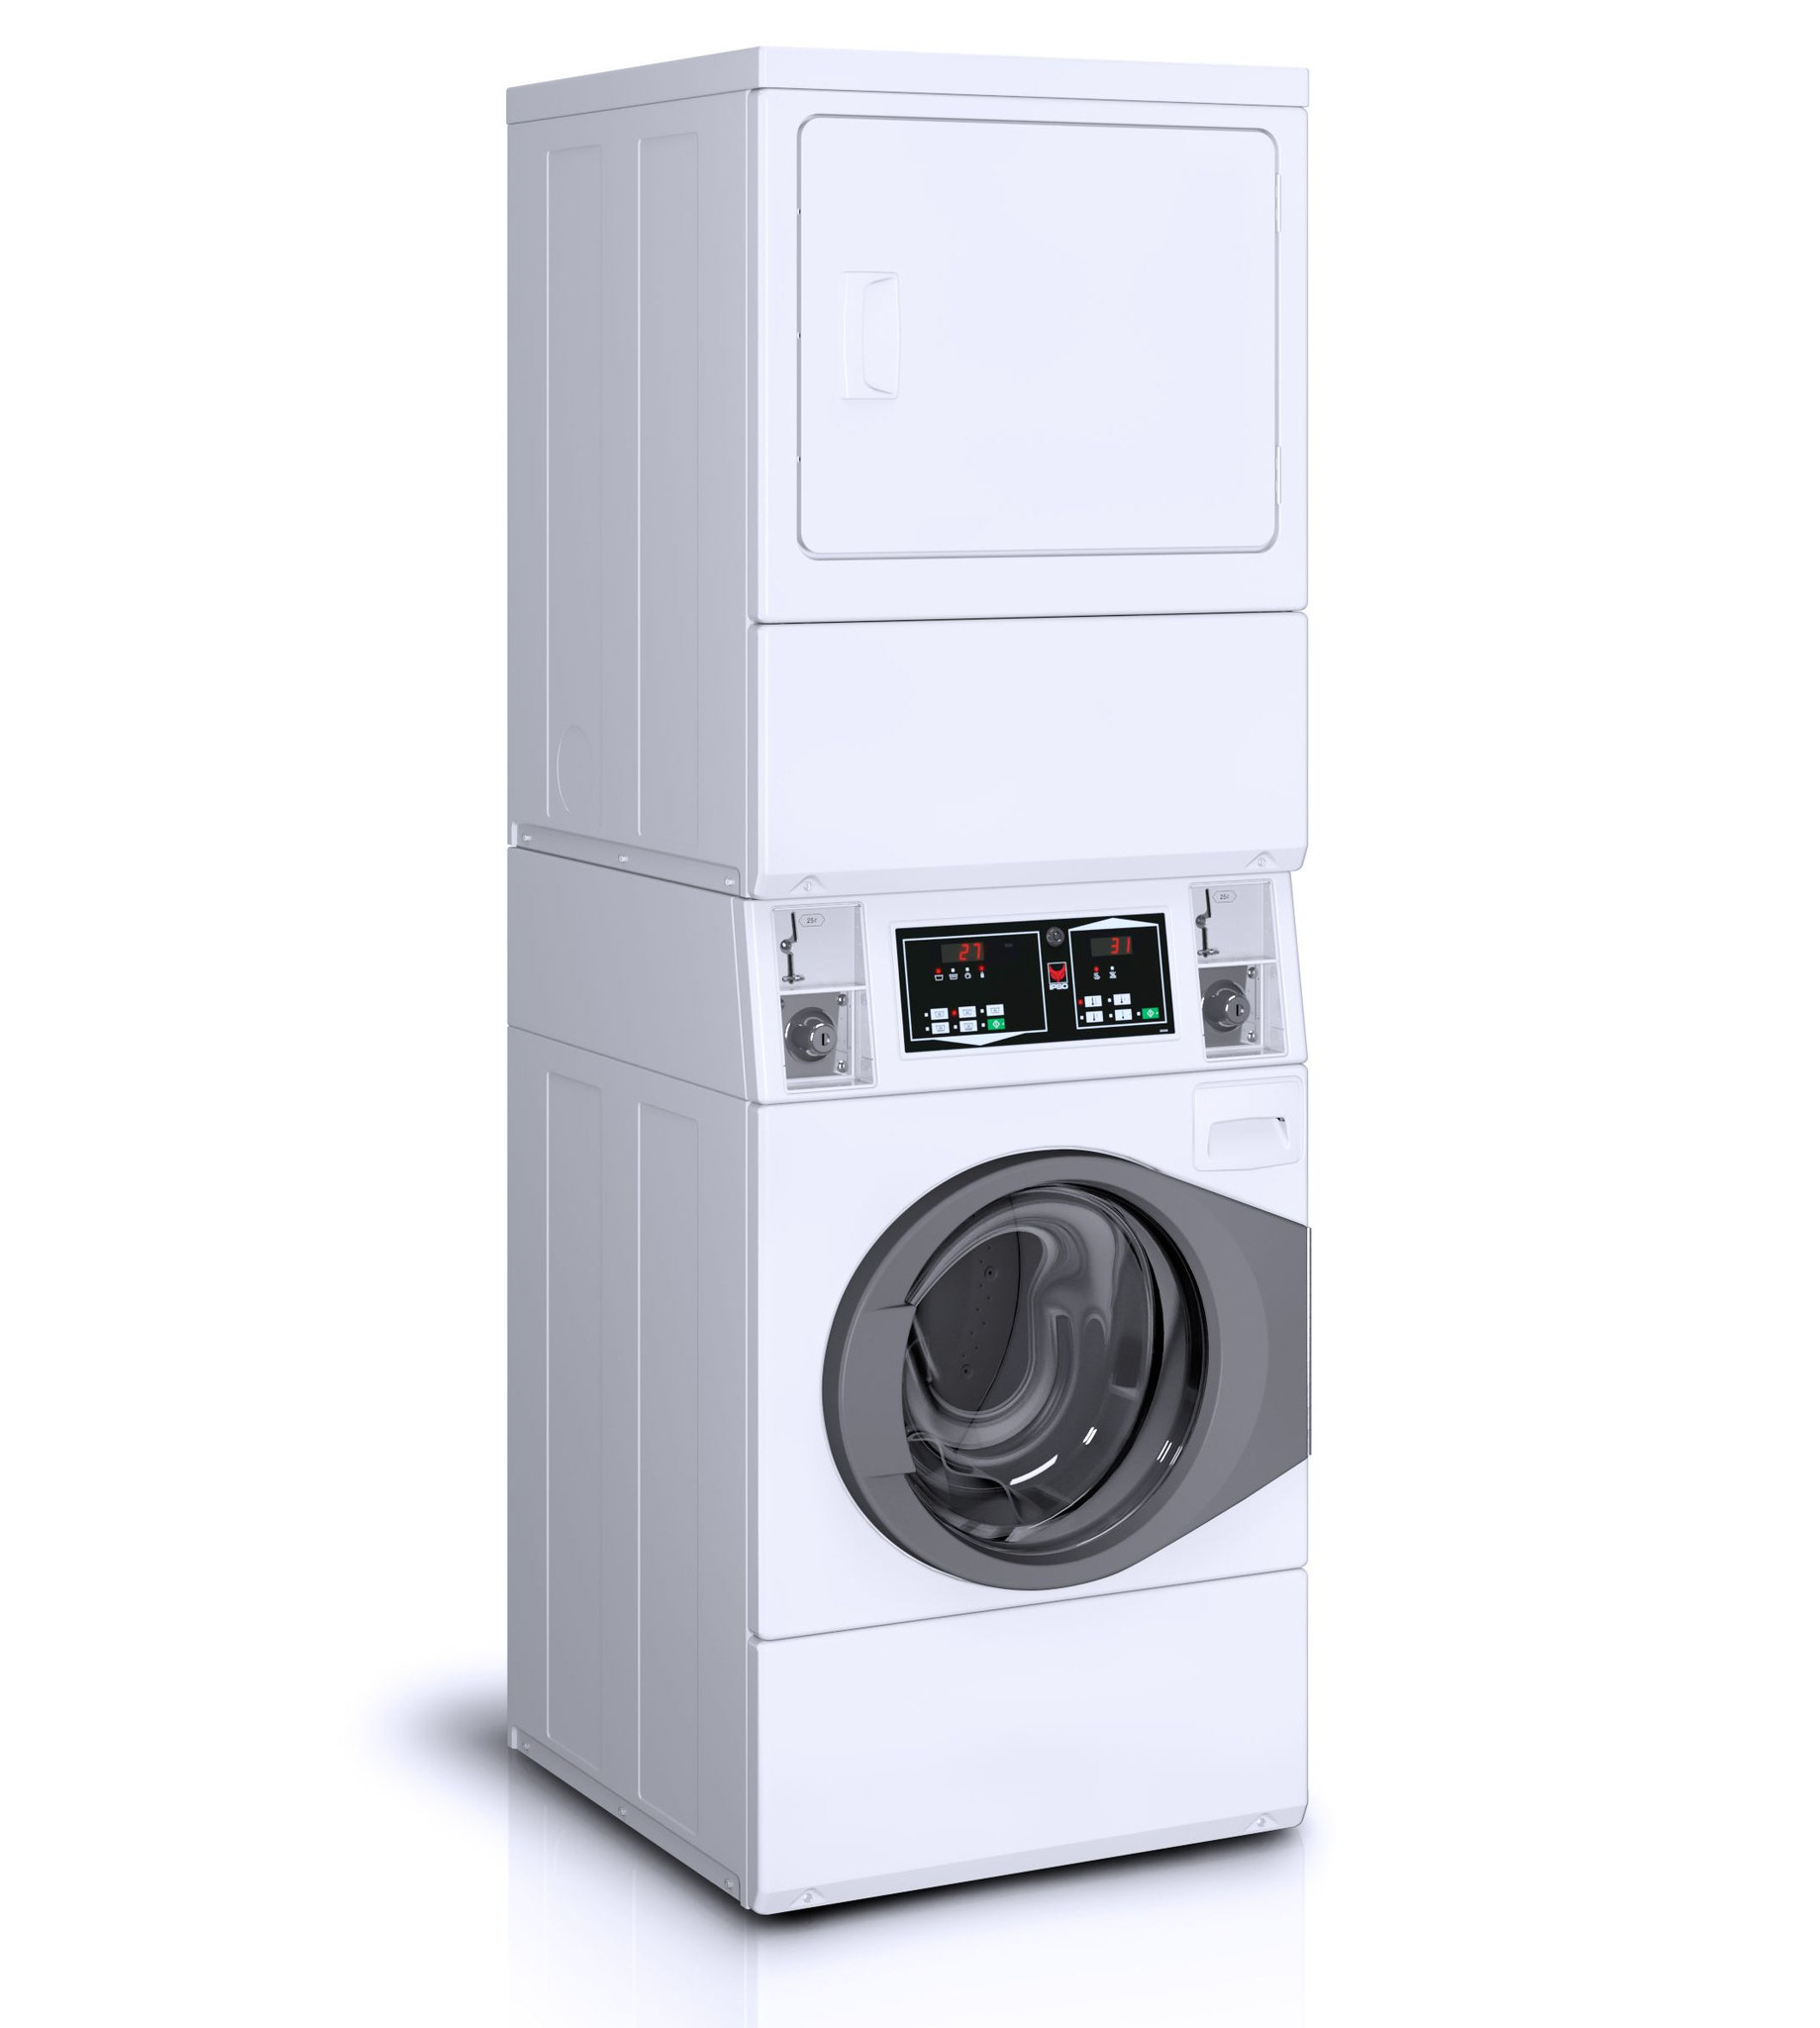 Apartment Size Washer Dryer Ottawa: Apartment Size Washer And Dryer Stackable